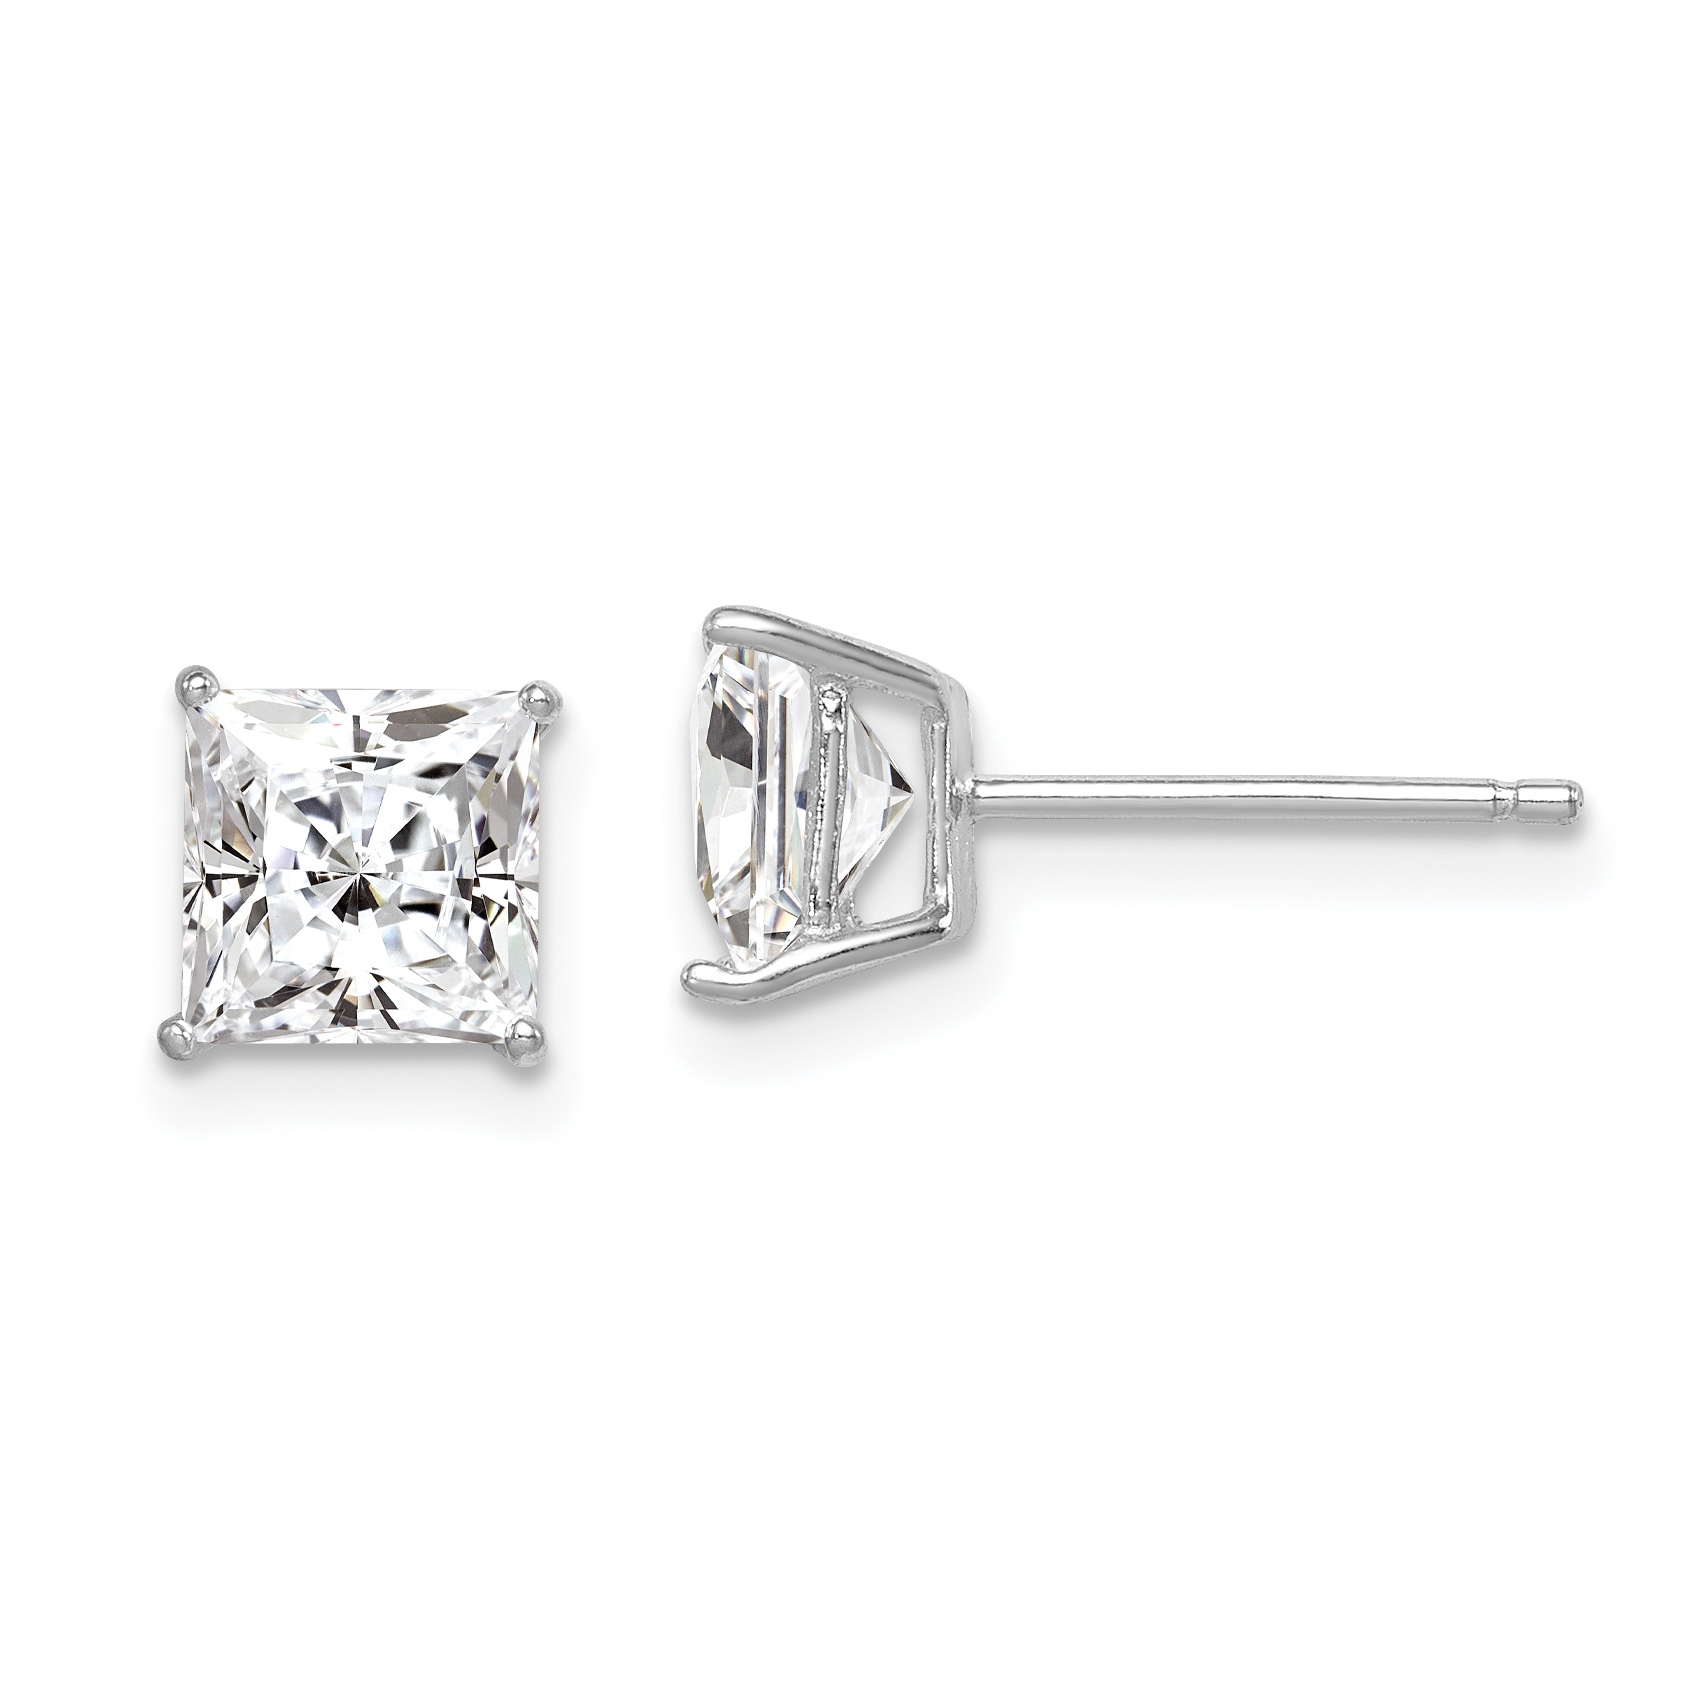 Square 4mm 925 Sterling Silver Ear Studs with Cubic Zirconia So Chic Jewels